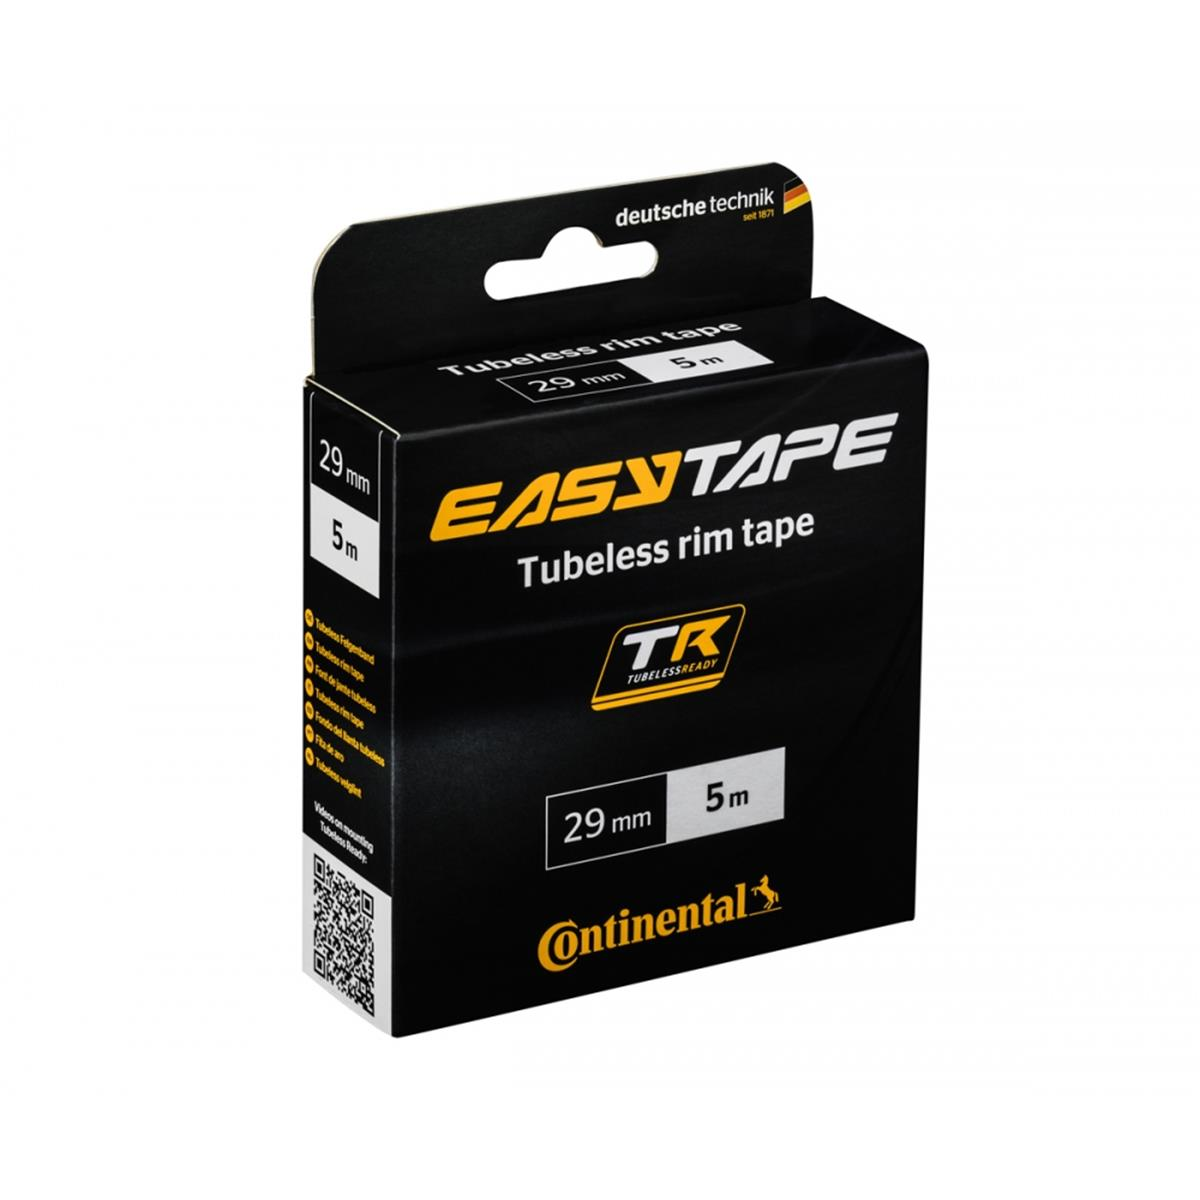 Continental Tubeless Felgenband Easy Tape 29 mm x 5 m